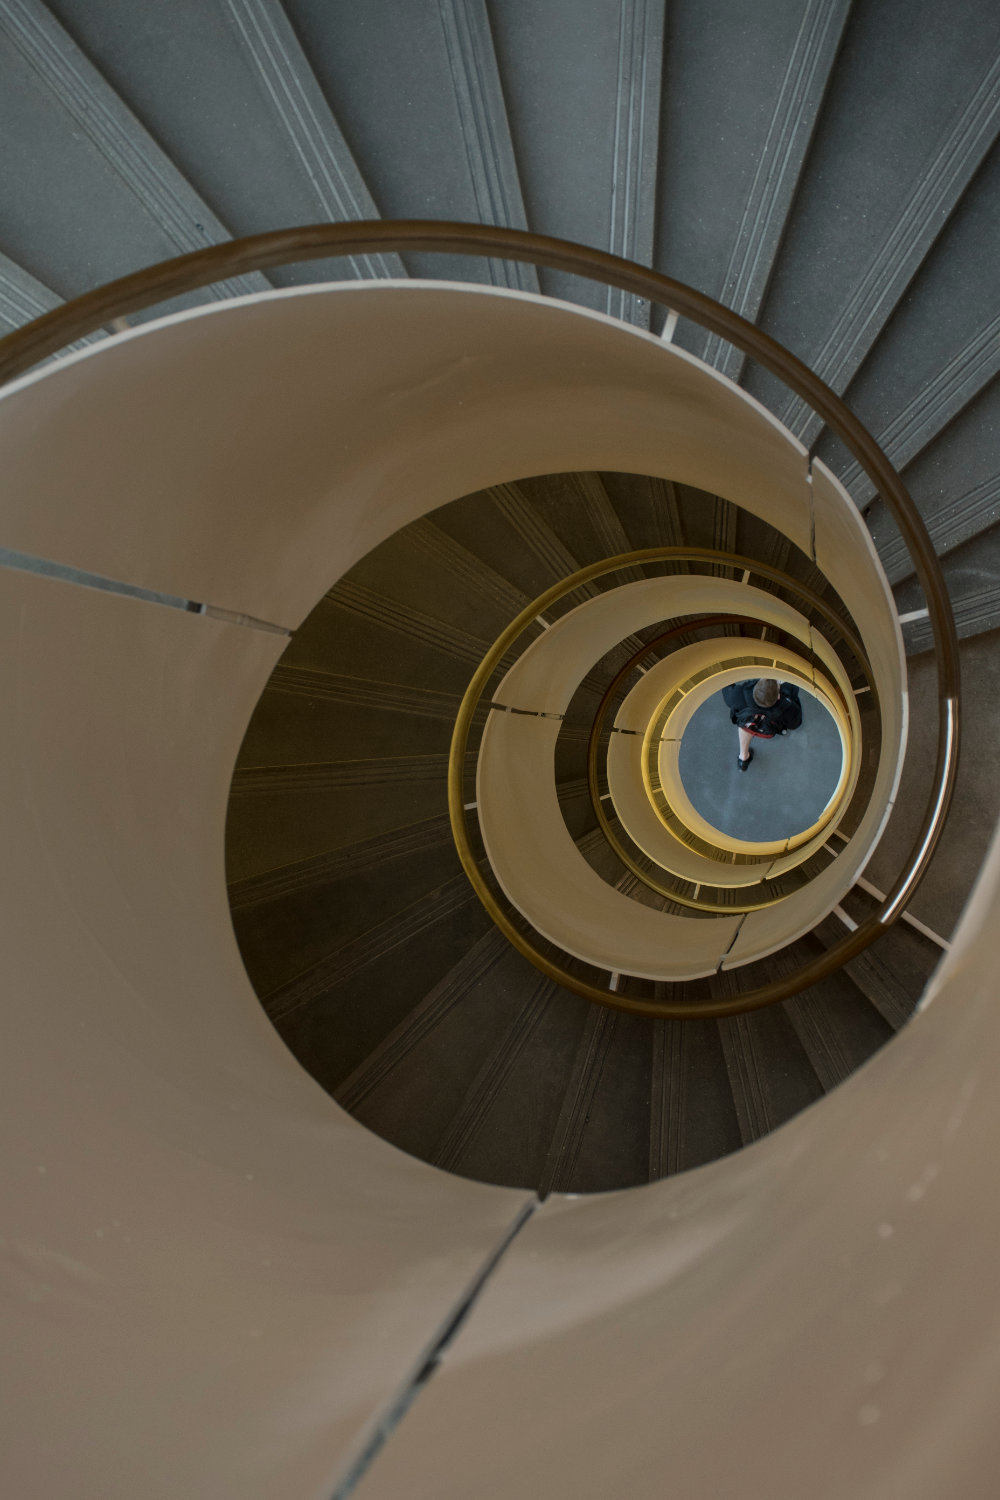 A view of a passerby walking beneath the center of the spiral staircase